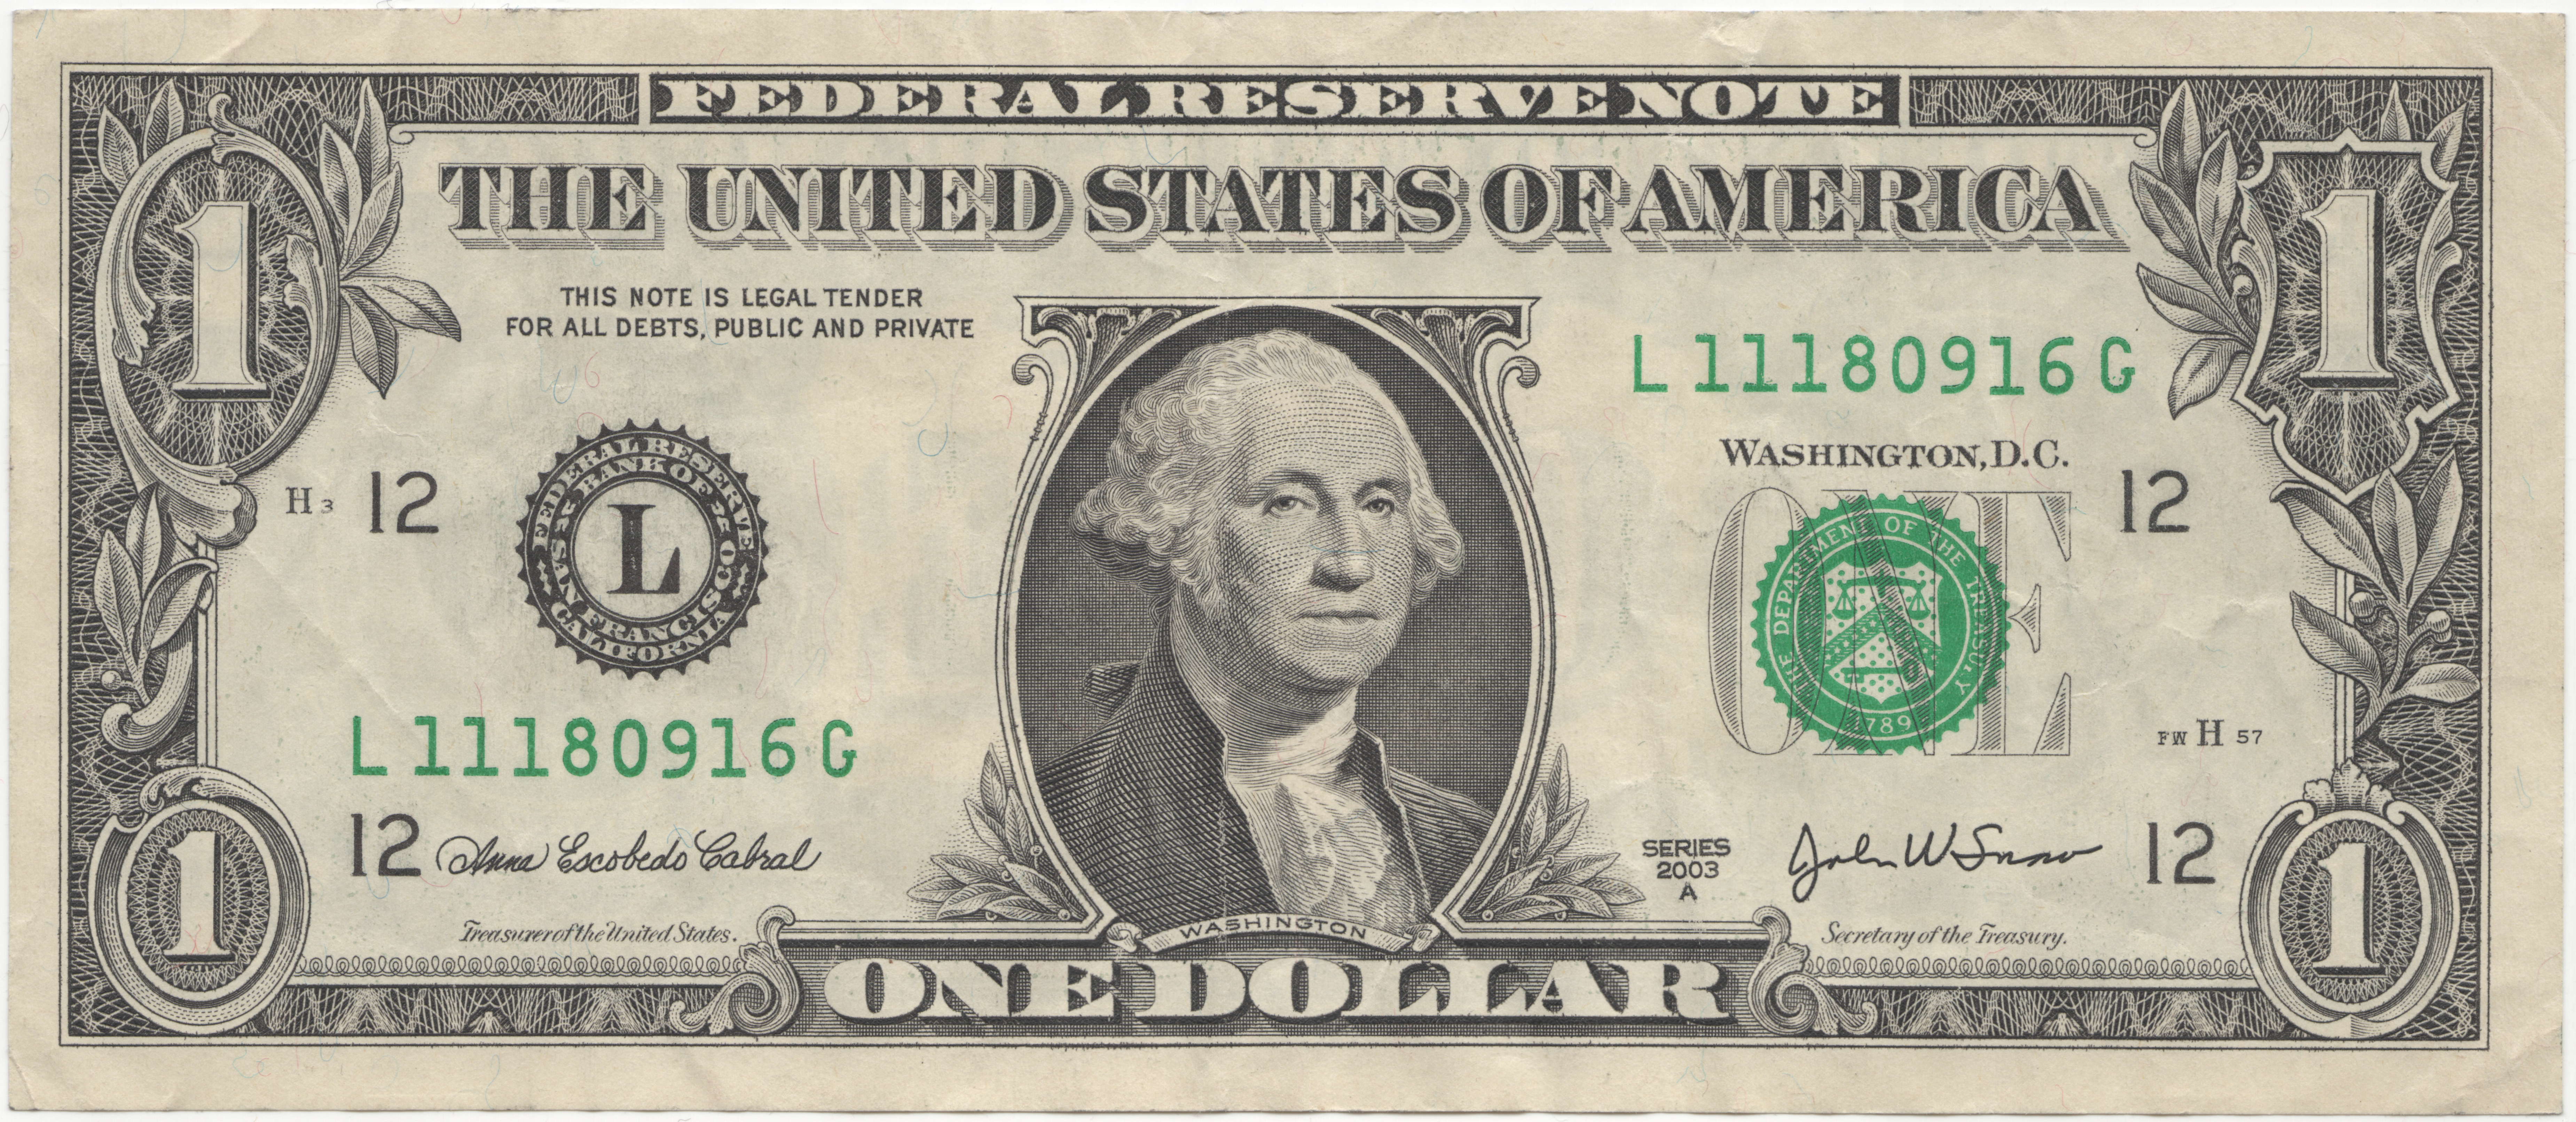 US-Dollar... United States one dollar bill, series 2003